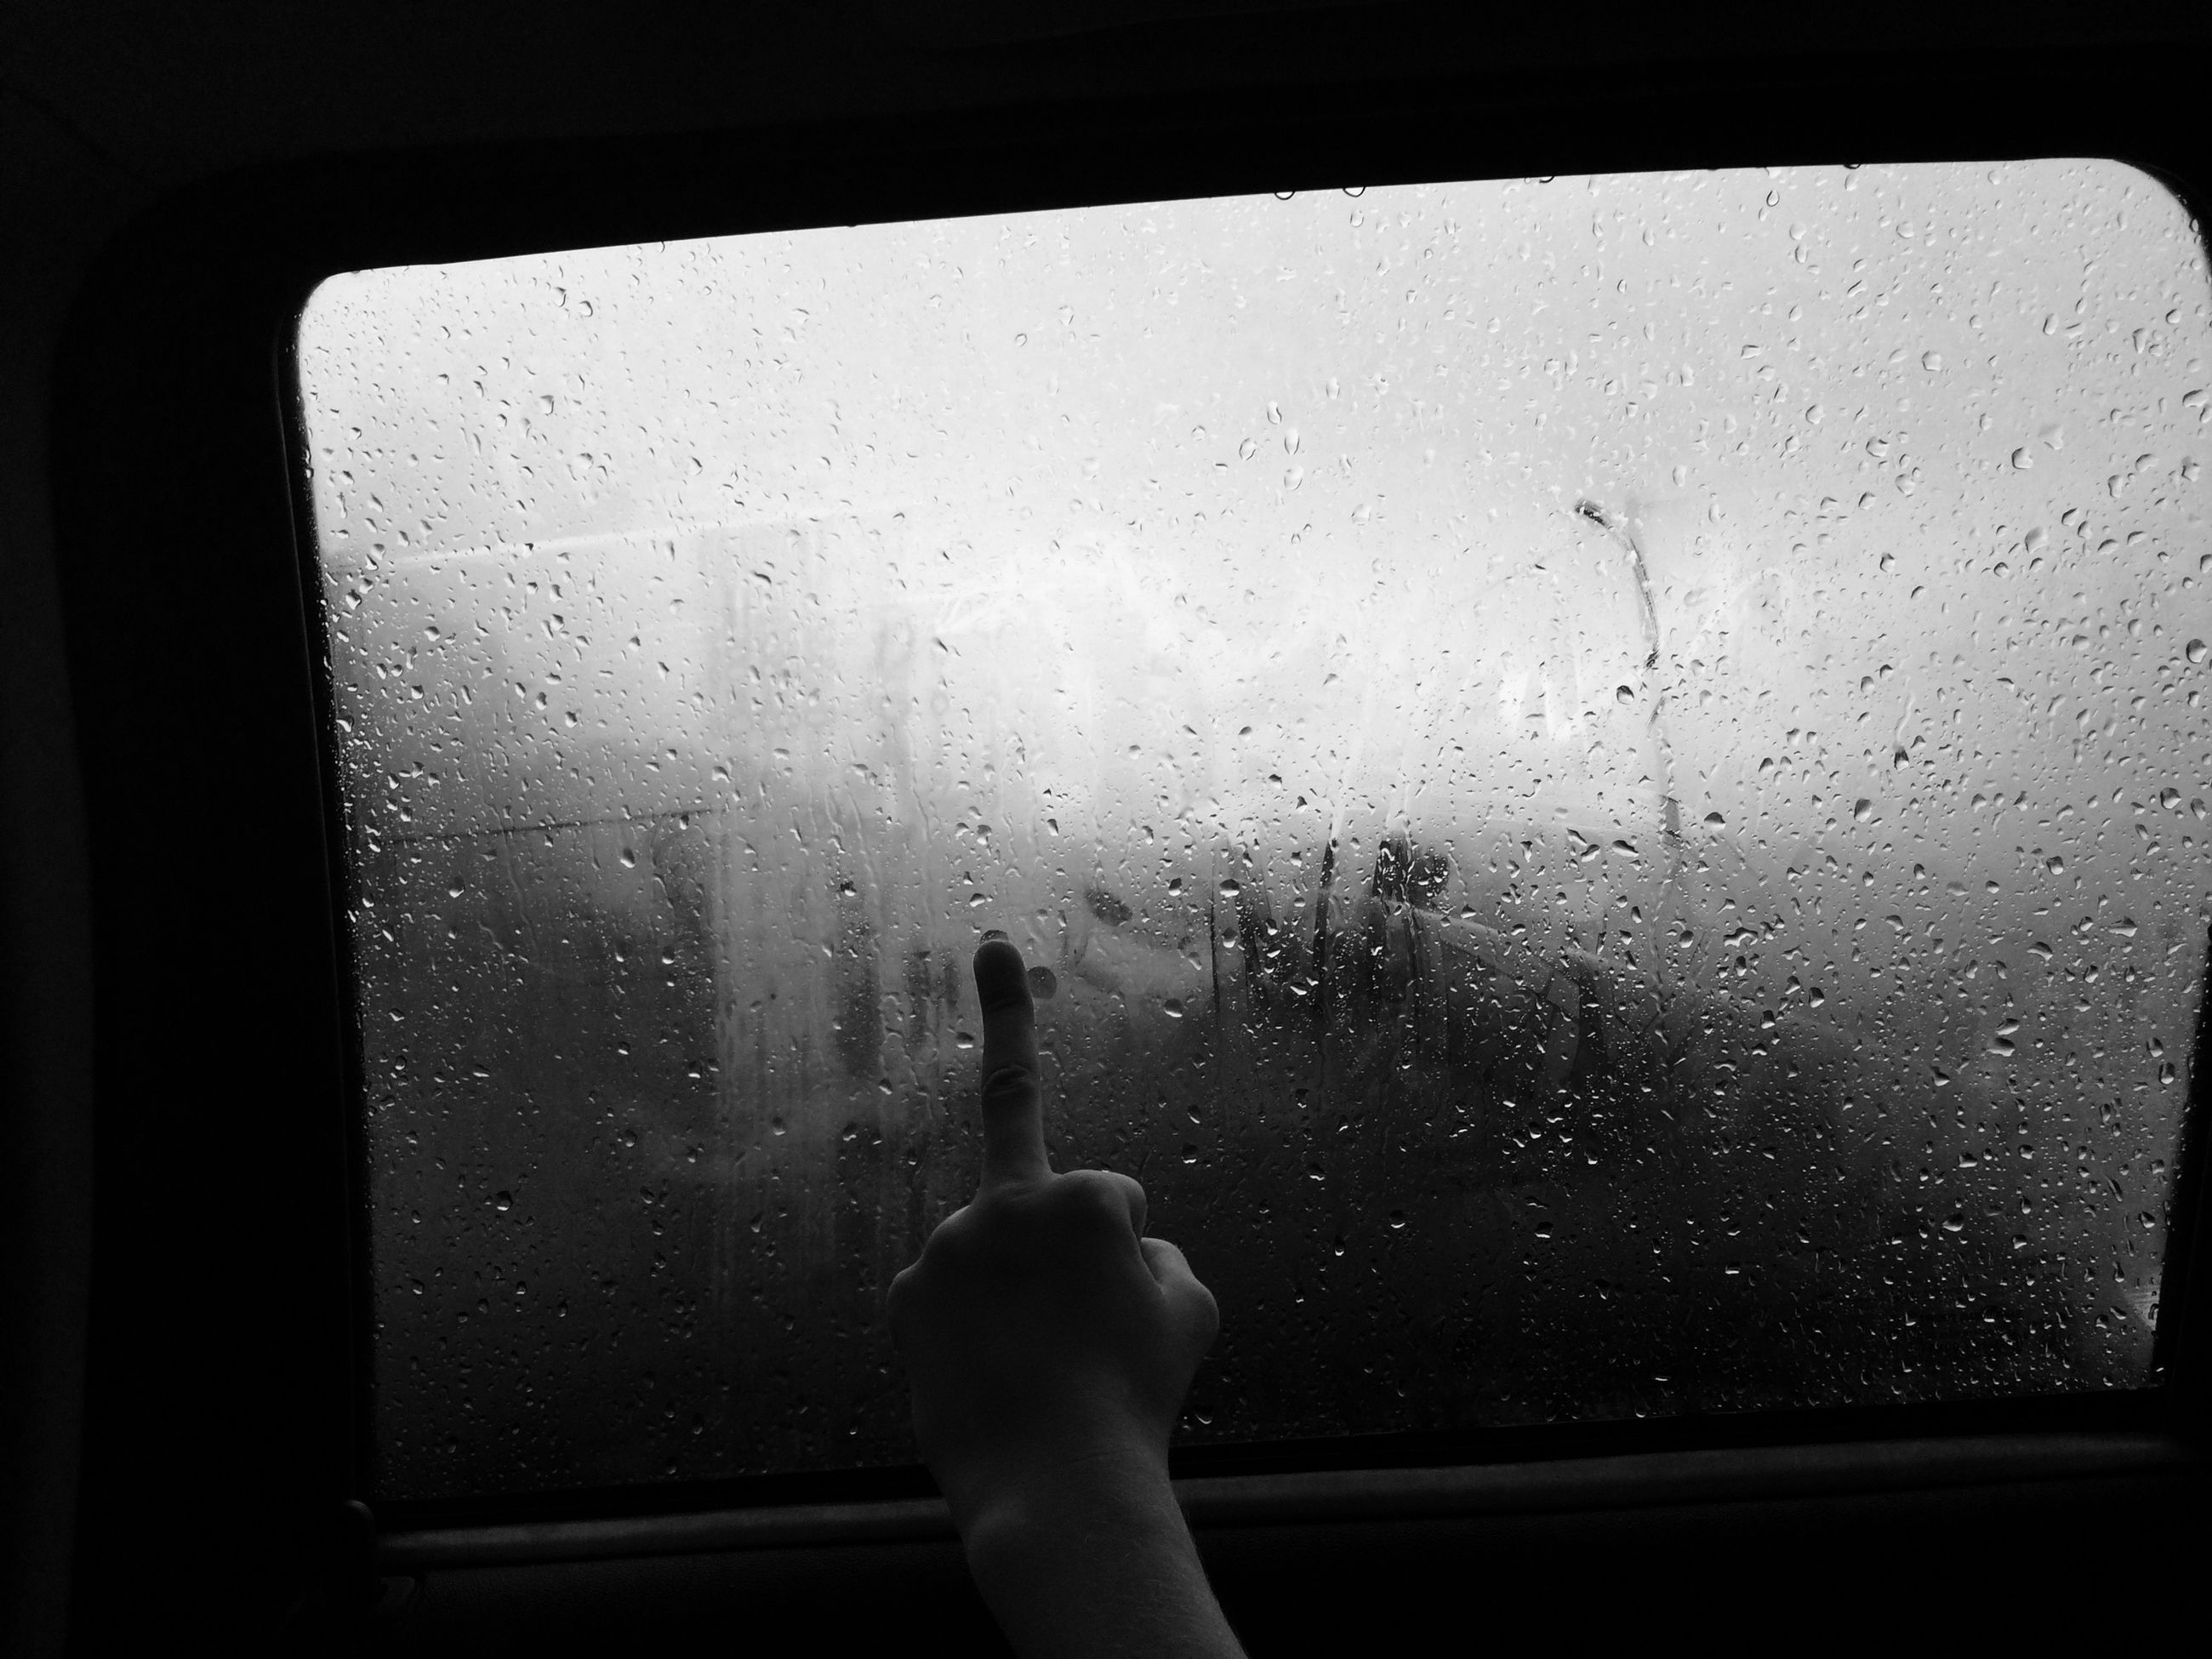 window, indoors, transparent, glass - material, looking through window, vehicle interior, person, lifestyles, glass, wet, drop, part of, water, rain, leisure activity, unrecognizable person, personal perspective